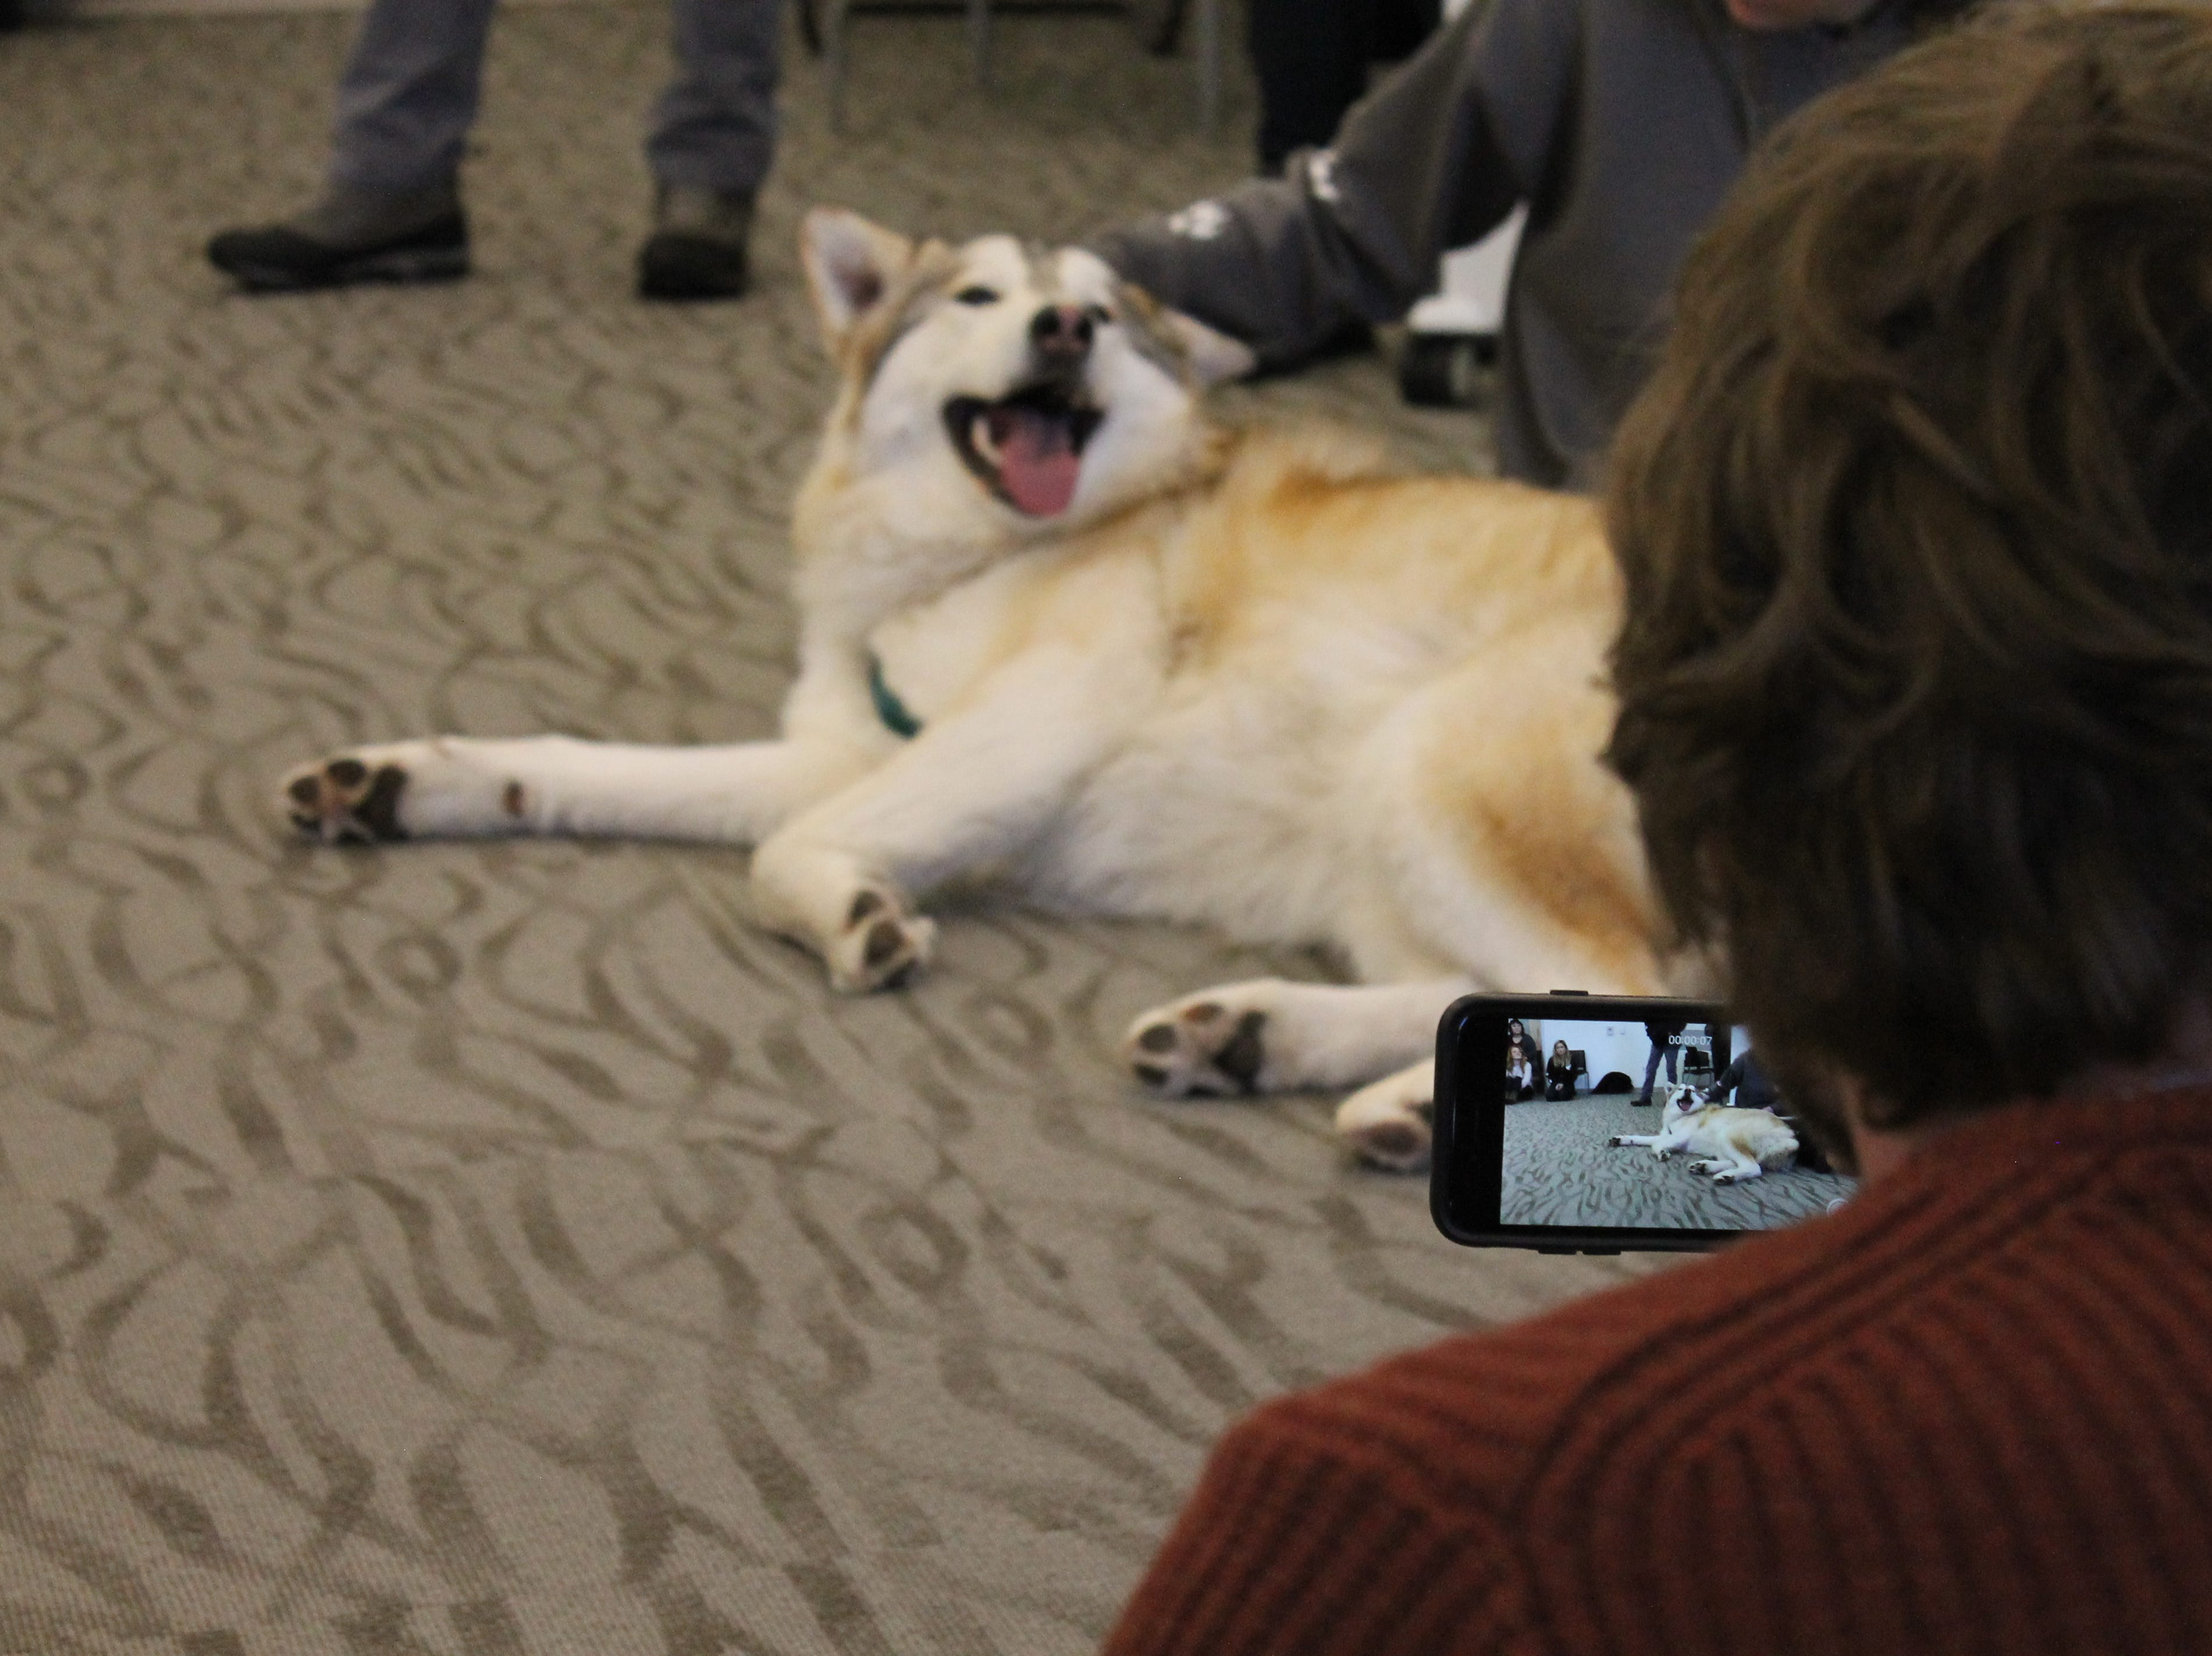 Brian Purcell takes a picture of Takota, a wolf dog, during class at Front Range Community College Friday. The class will work on a project designing posters to auction off at the W.O.L.F. Sanctuary's annual gala in May.